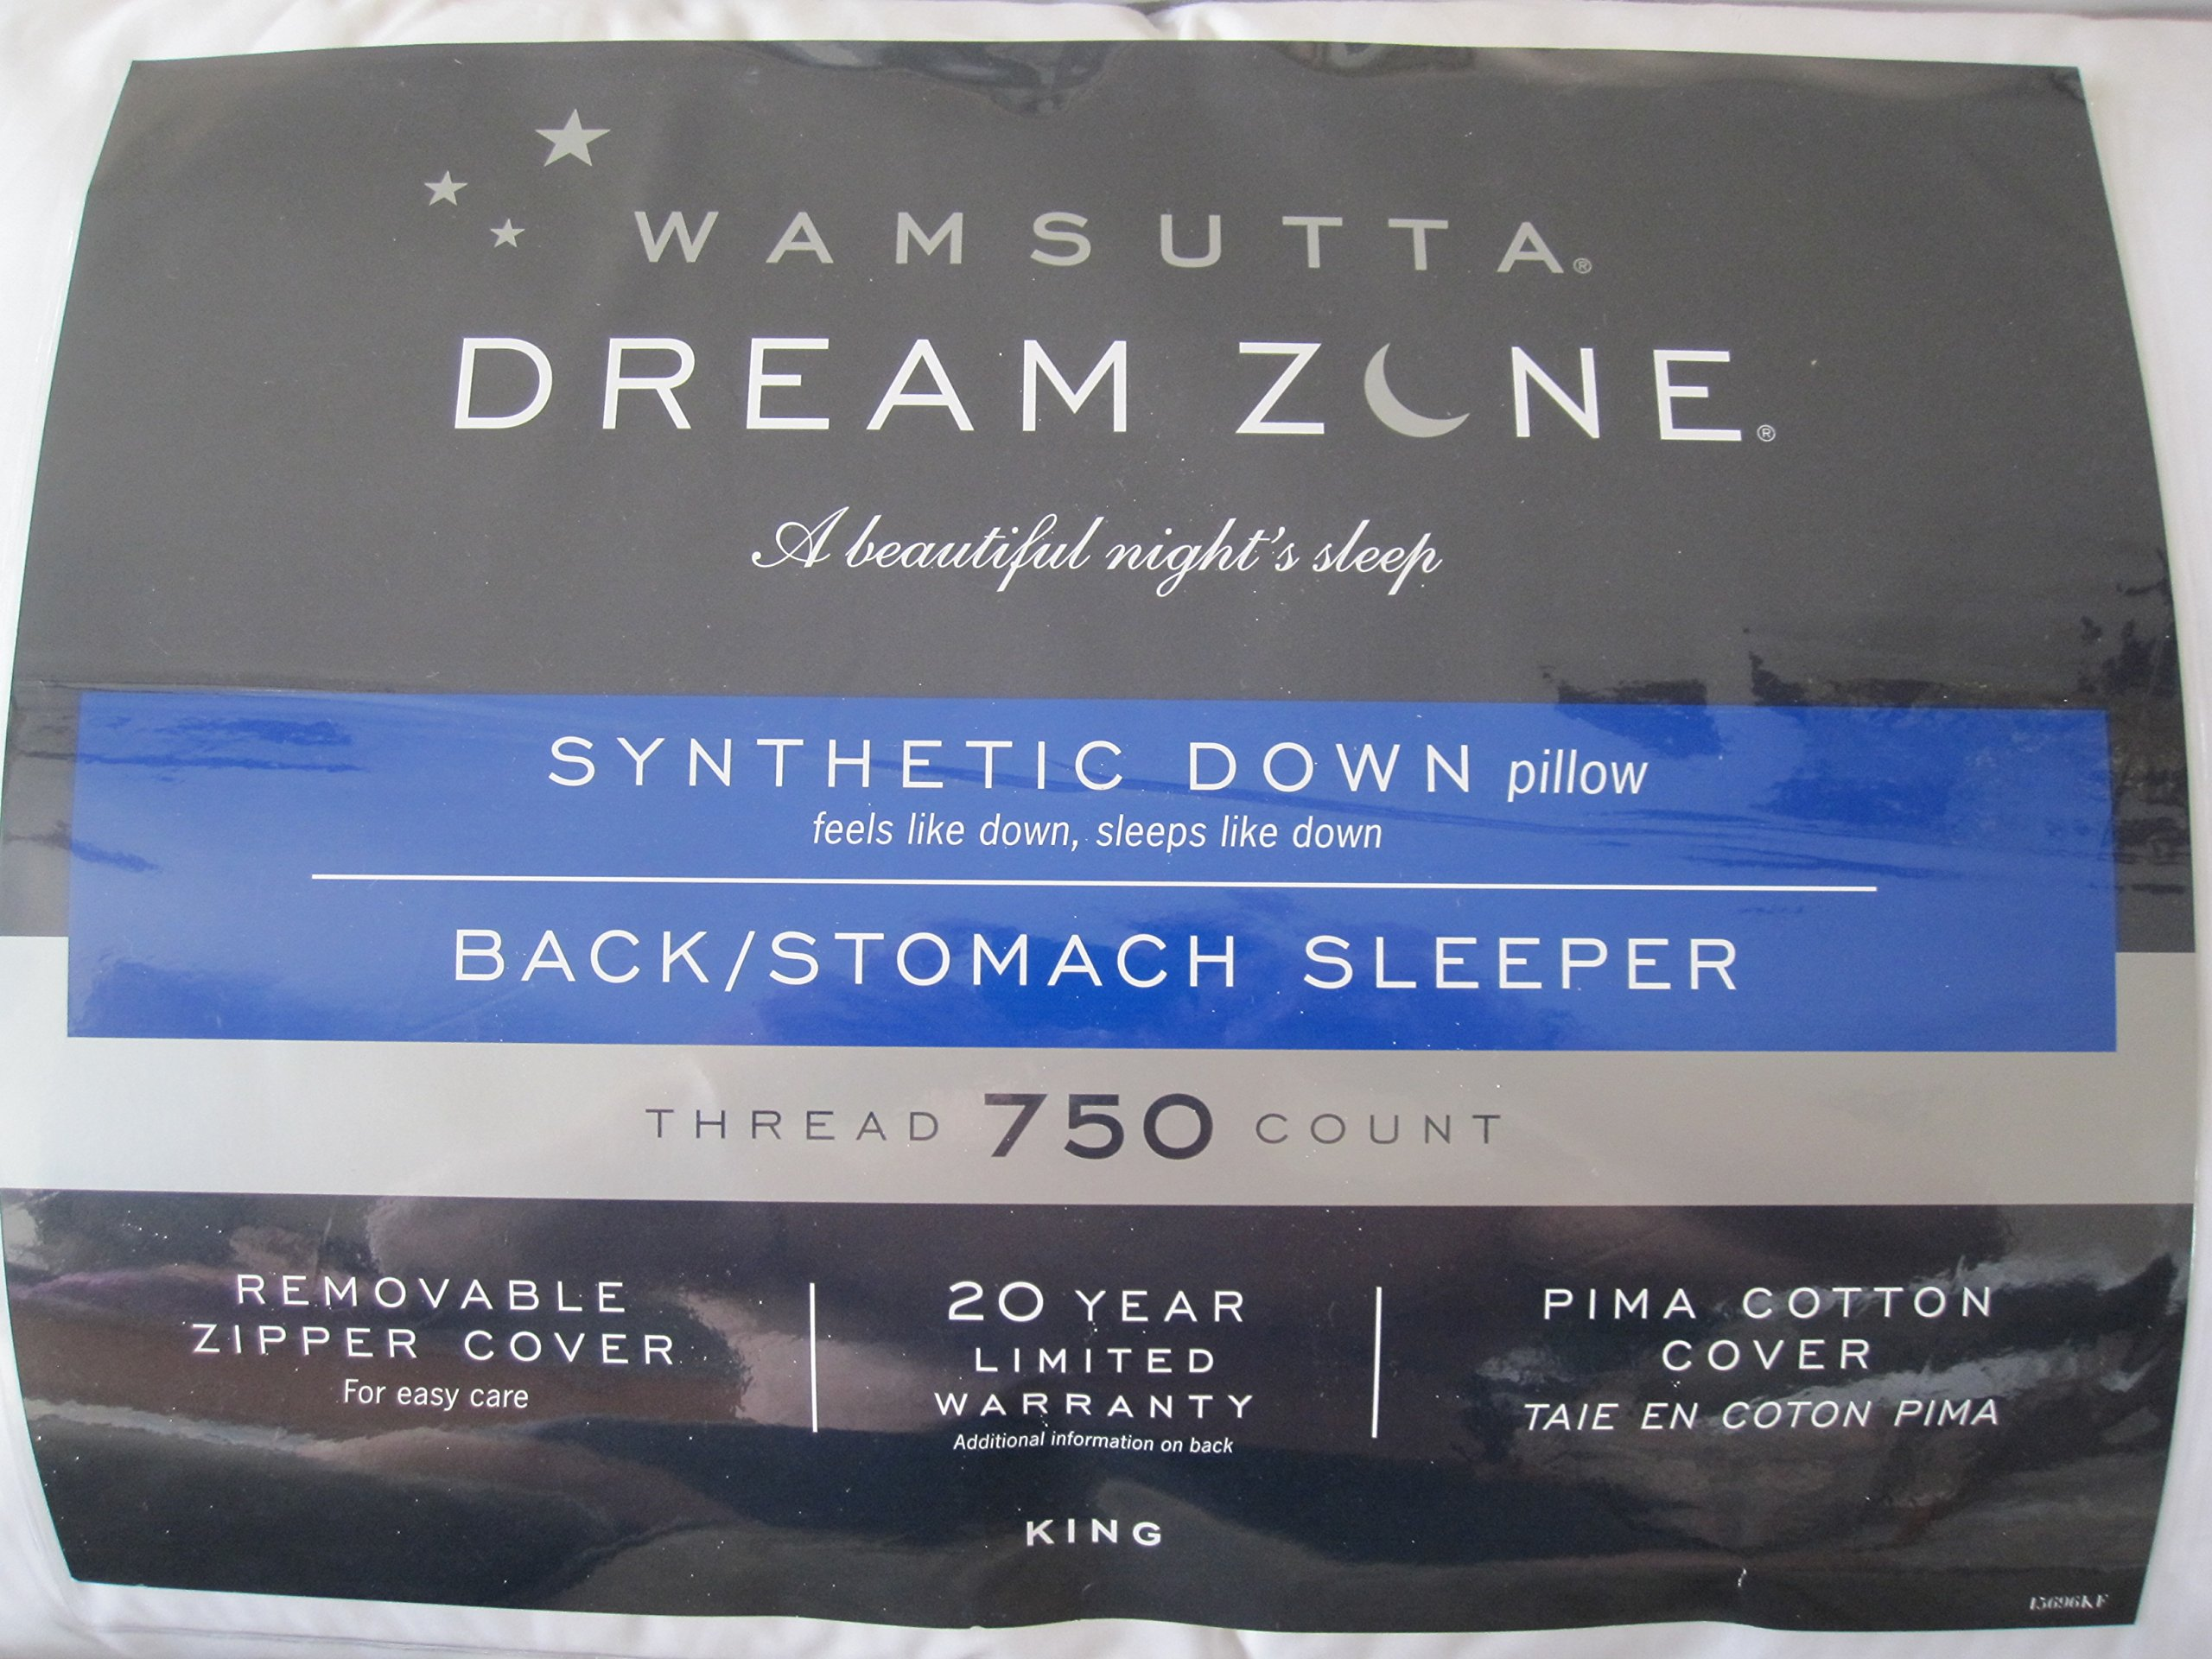 Wamsutta Dream Zone Synthetic Down Back/Stomach Sleeper 750-Thread Count (King)